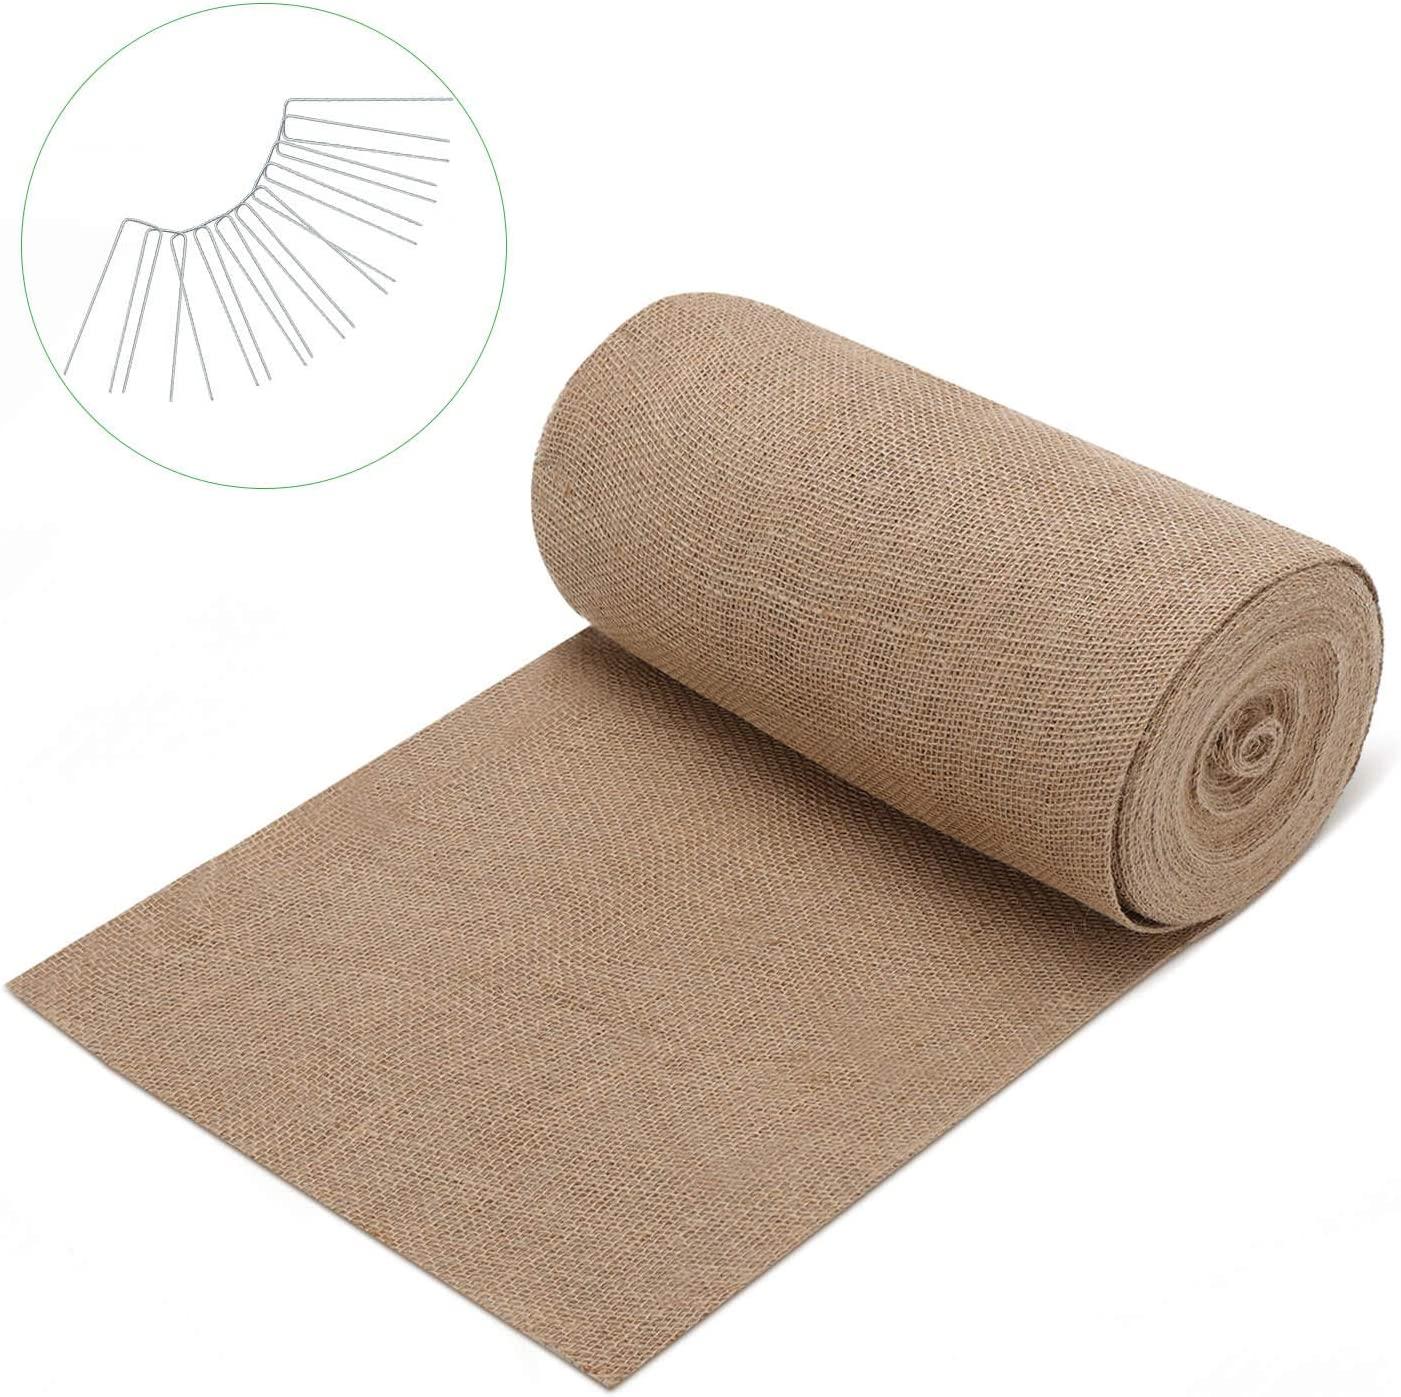 GROWNEER 2.6 x 48 Feet Natural Burlap Weed Barrier Fabric with 12 pcs Garden Stakes, Jute Planter Liner for Garden, Landscape, Edging, Window Planters, DIY, Seed Starting